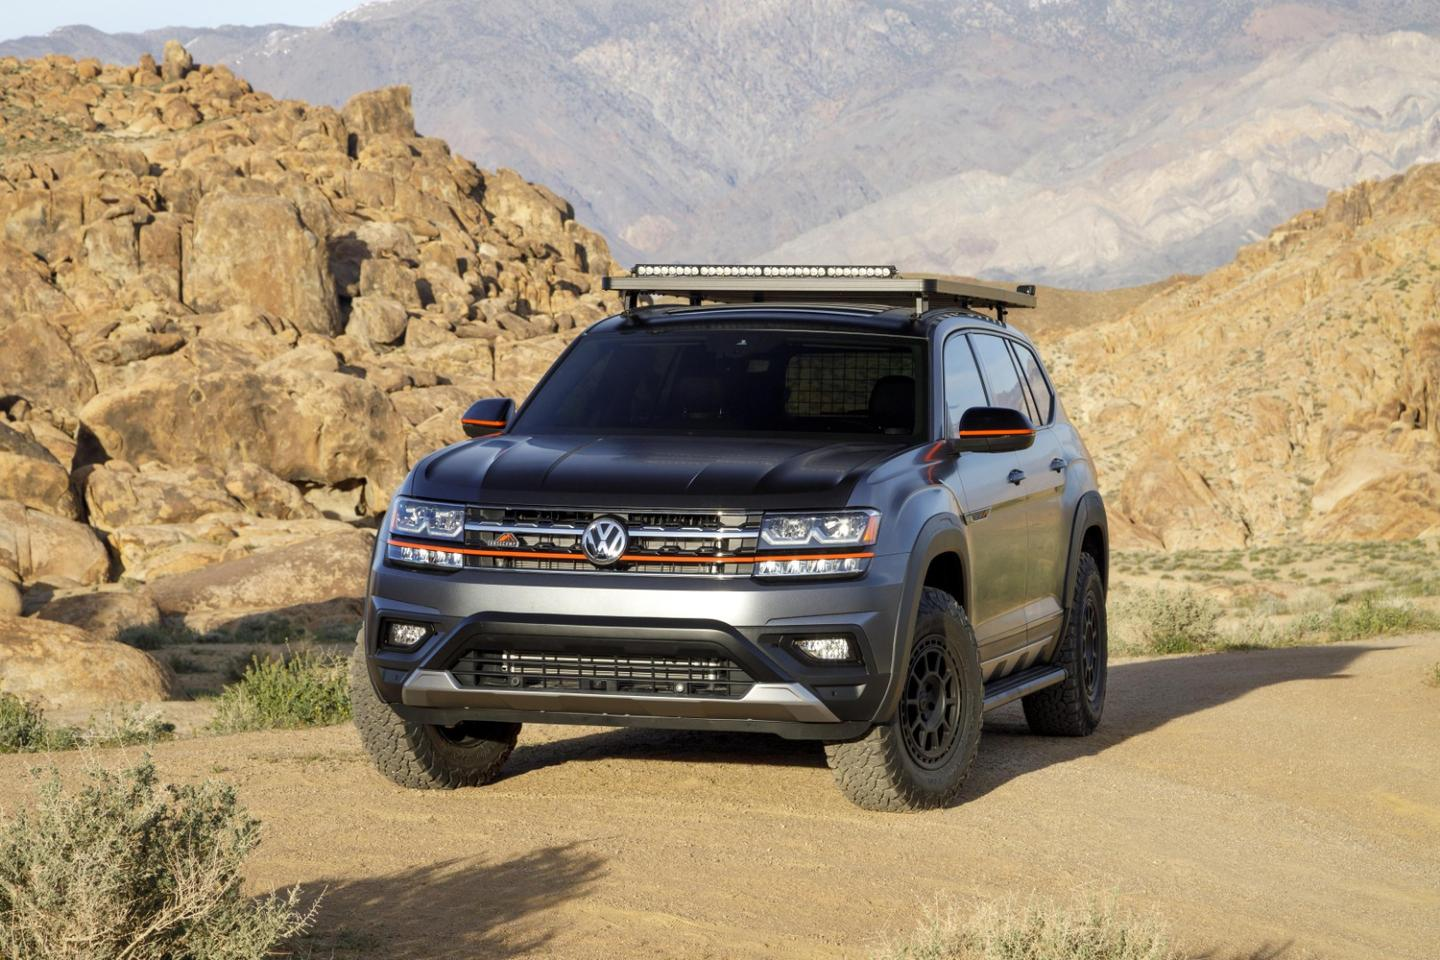 The Basecamp Concept is based on an Atlas SELPremium with 276-hp V6 and 4Motion all-wheel drive